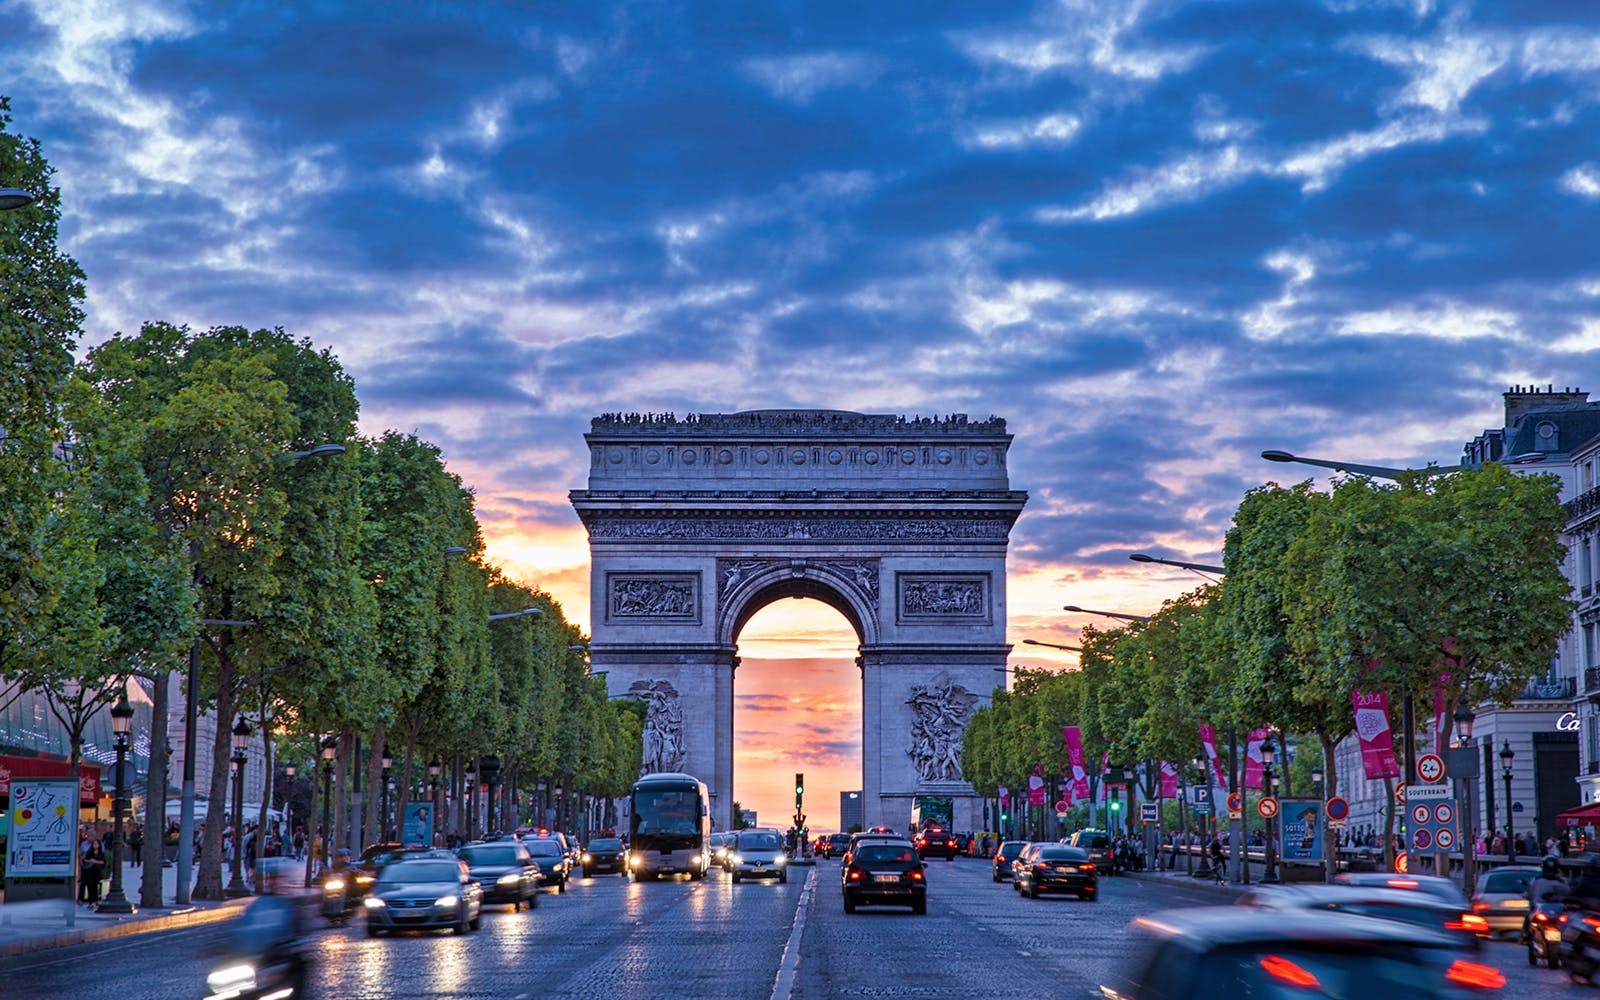 skip the line: arc de triomphe rooftop tickets-1